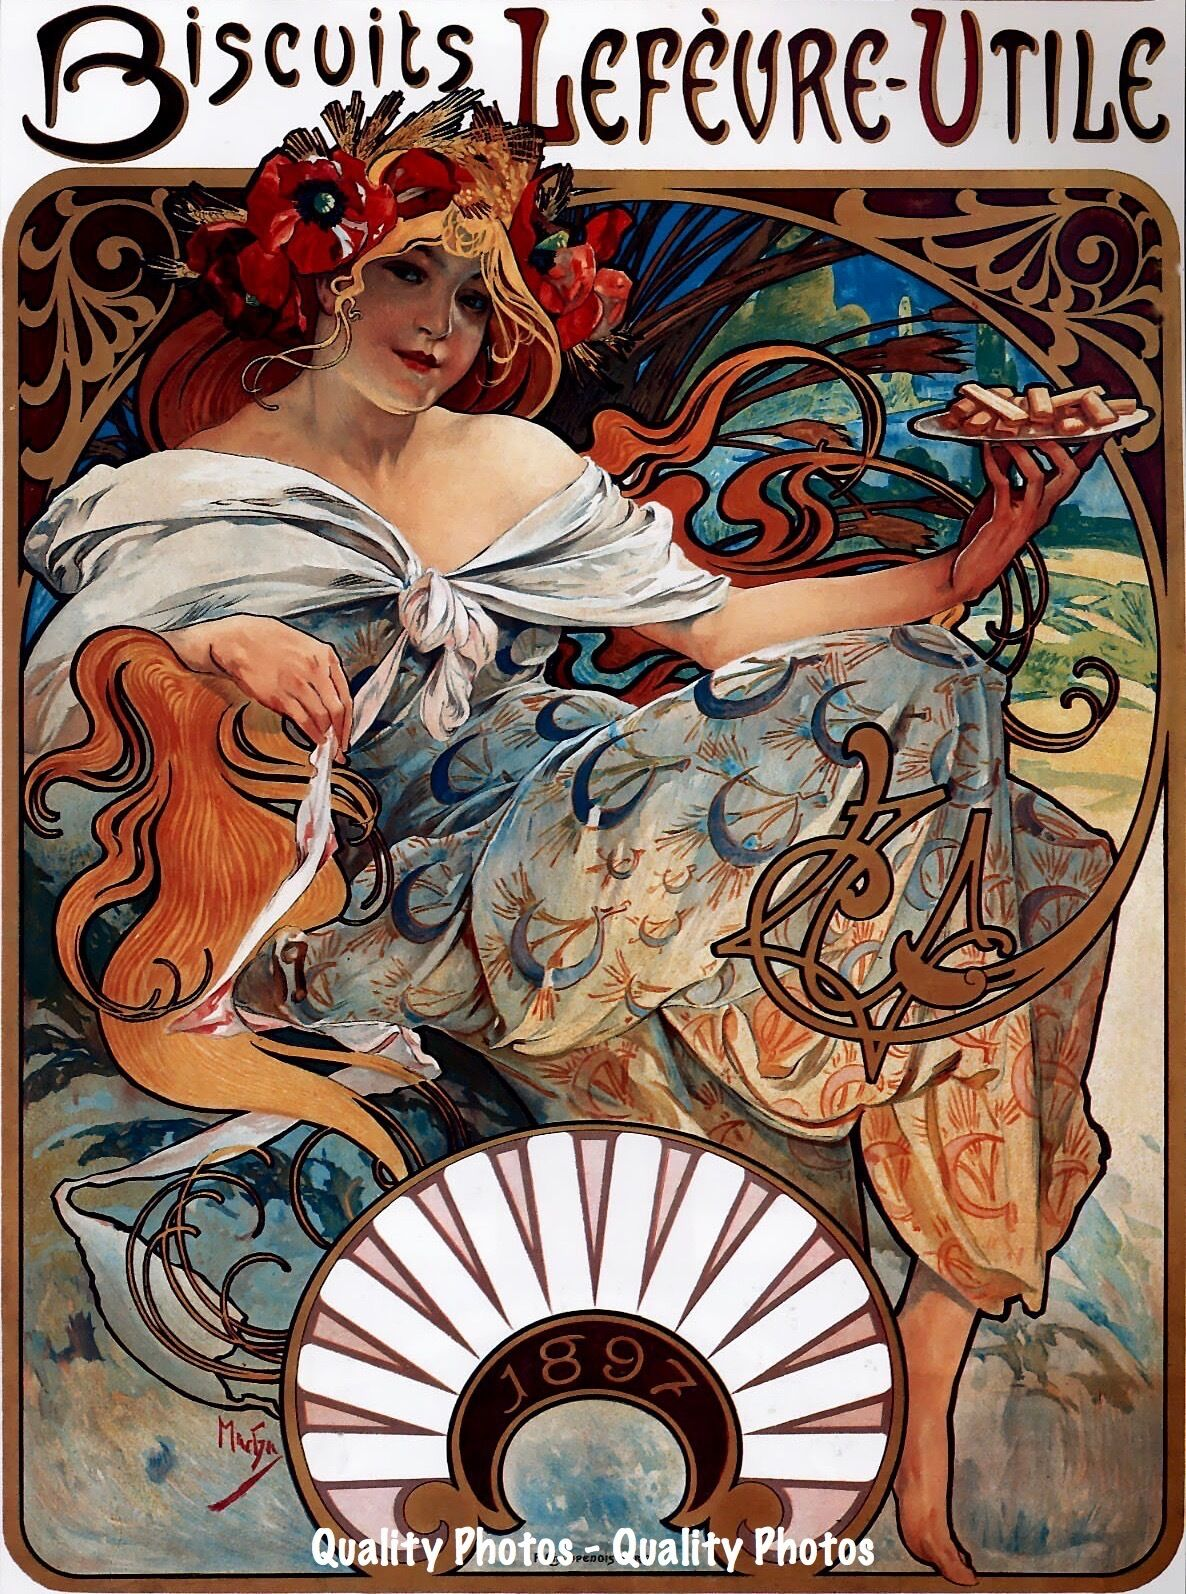 Art Nouveau Cookie Ad 8 5x11 Photo Print French Lady Biscuits Alphonse Mucha Ebay